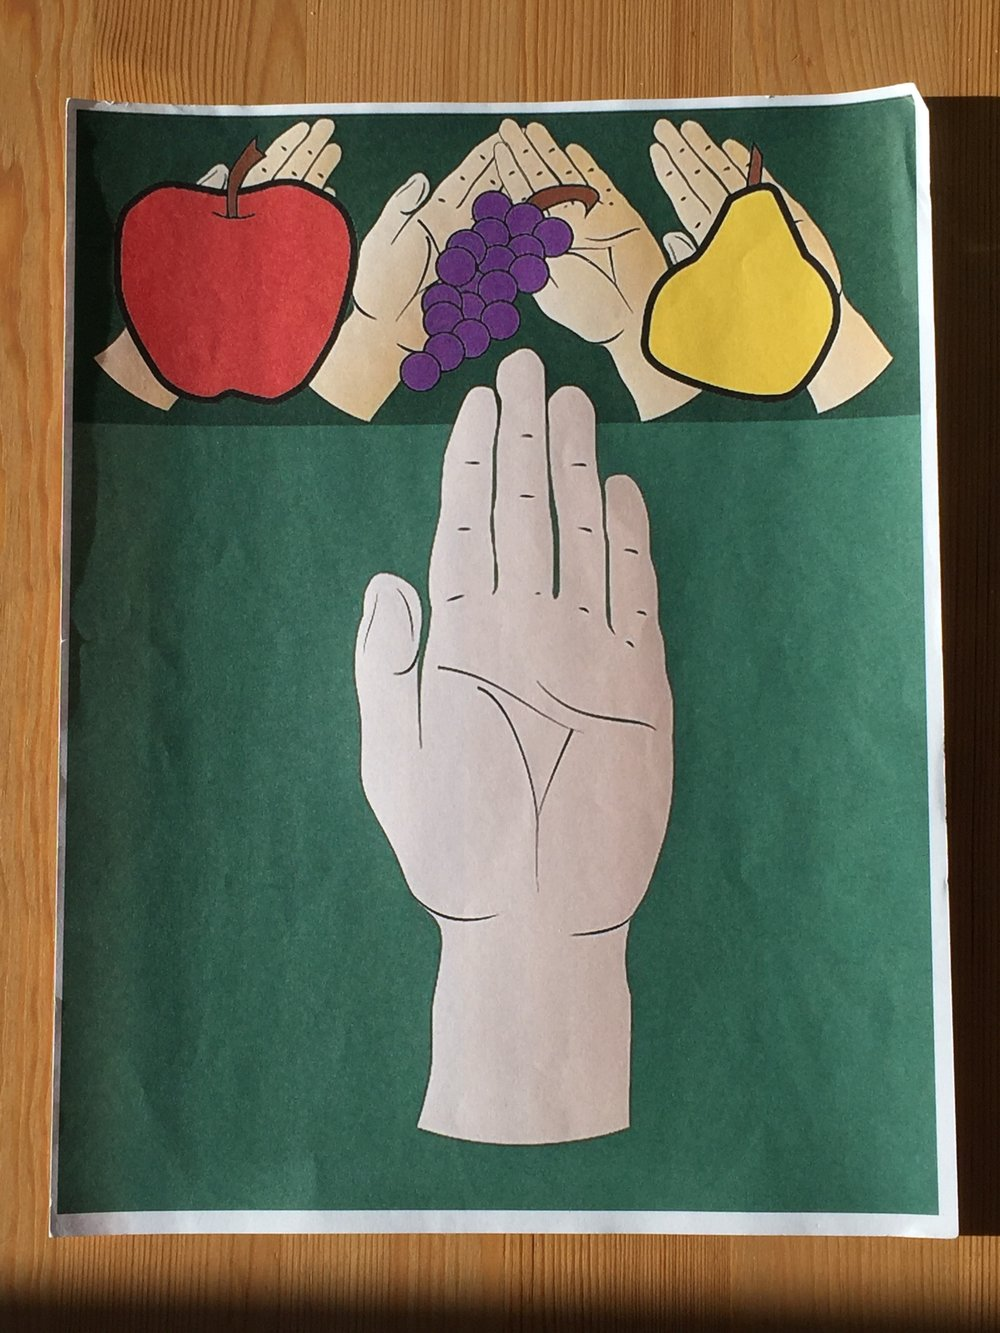 Image Target - To identify with the user (general public in the US) colors such as green, purple, and the placement of fruits at the top of the image were used to emphasize nutrition. The hand below the banner, helps to show the user where to place their hand.